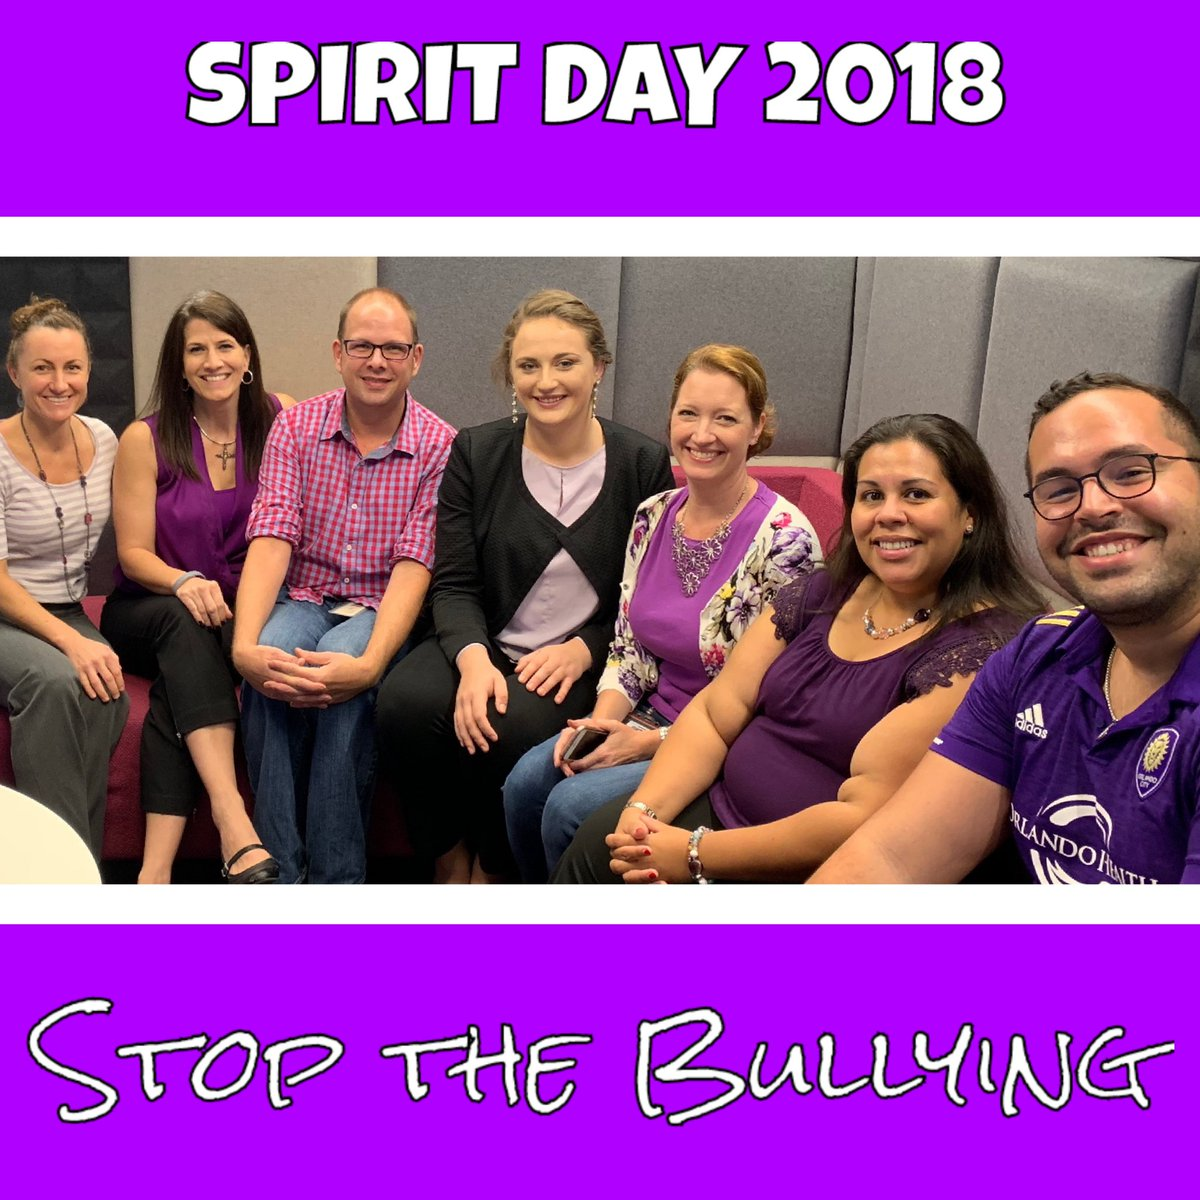 Love my office! Colleagues dressed in purple to support Spirit Day. Stop the bullying. Be an ally. #CitiAmbassador #LifeAtCiti #SpiritDay